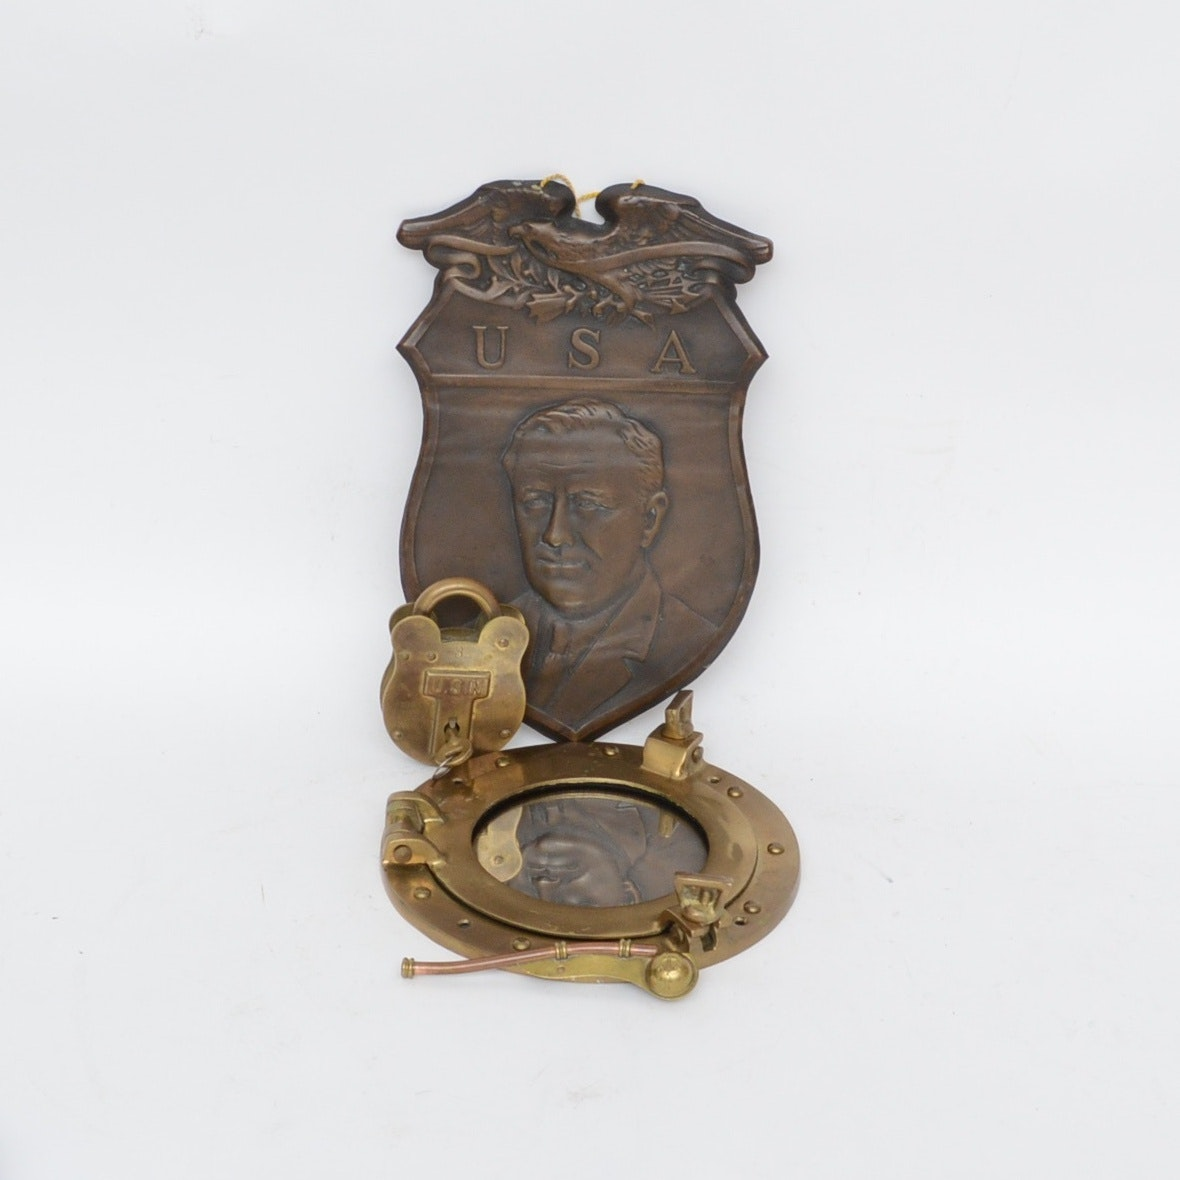 F.D.R. Copper Plaque and USN Boatswains Whistle, Lock and Mirror